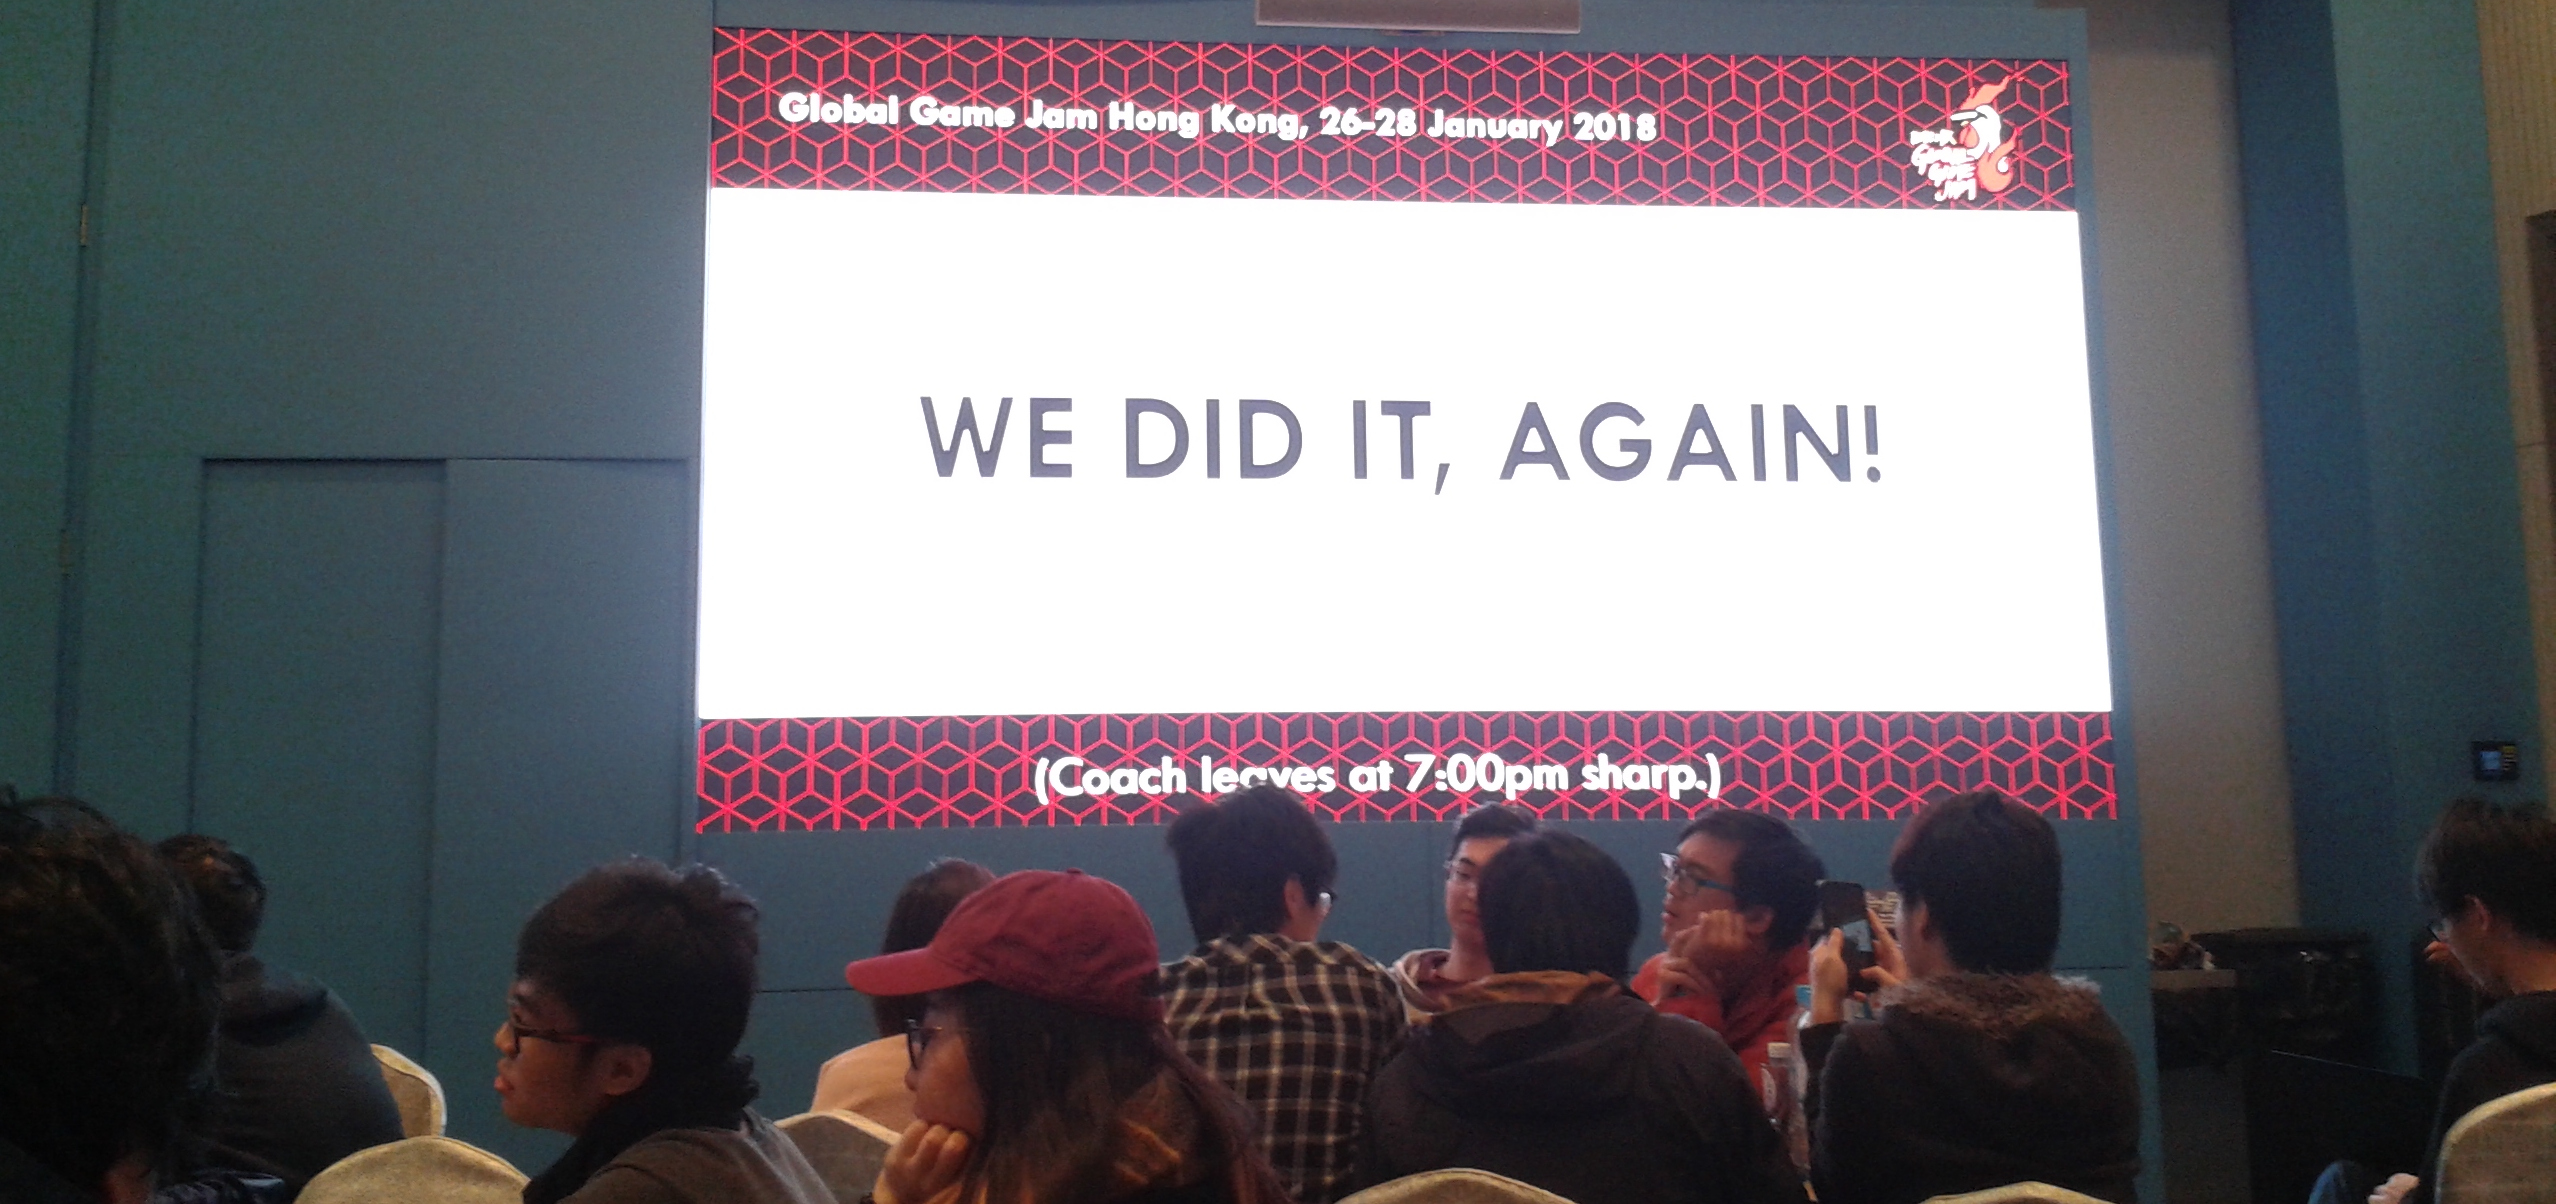 "GGJ Venue with a big screen showing a Powerpoint slide with the words ""WE DID IT, AGAIN!"""